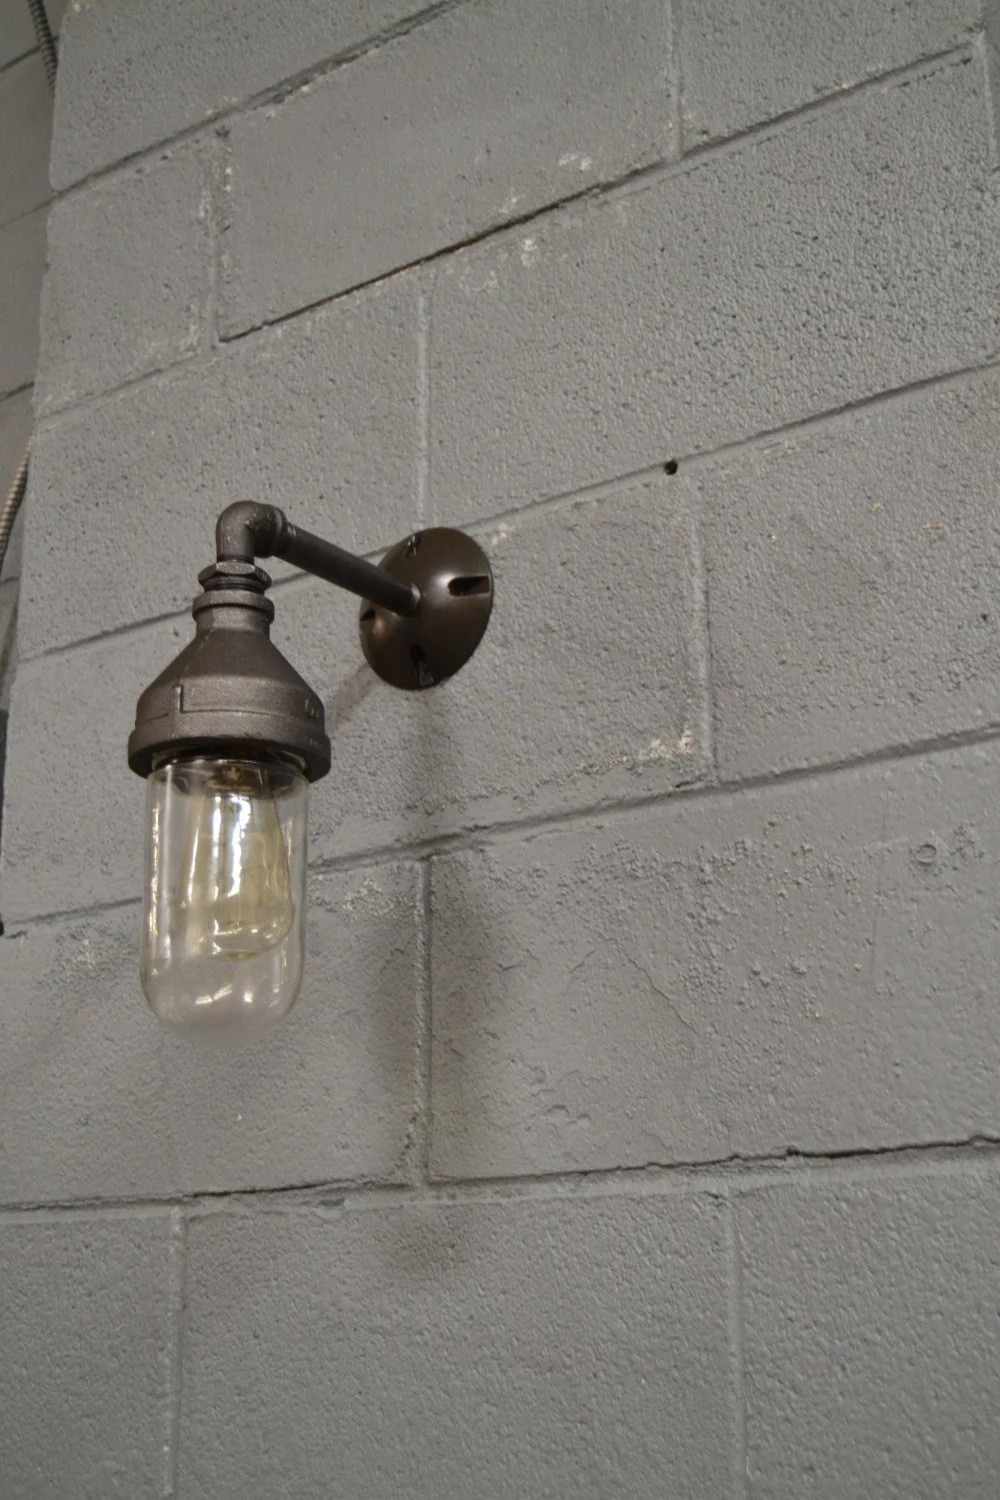 outdoor lighting vintage kitchen lighting Outdoor light glass light Kitchen Light Wall Sconce Industrial Sconce Vintage Light Old Light Ship Light Nautical Light